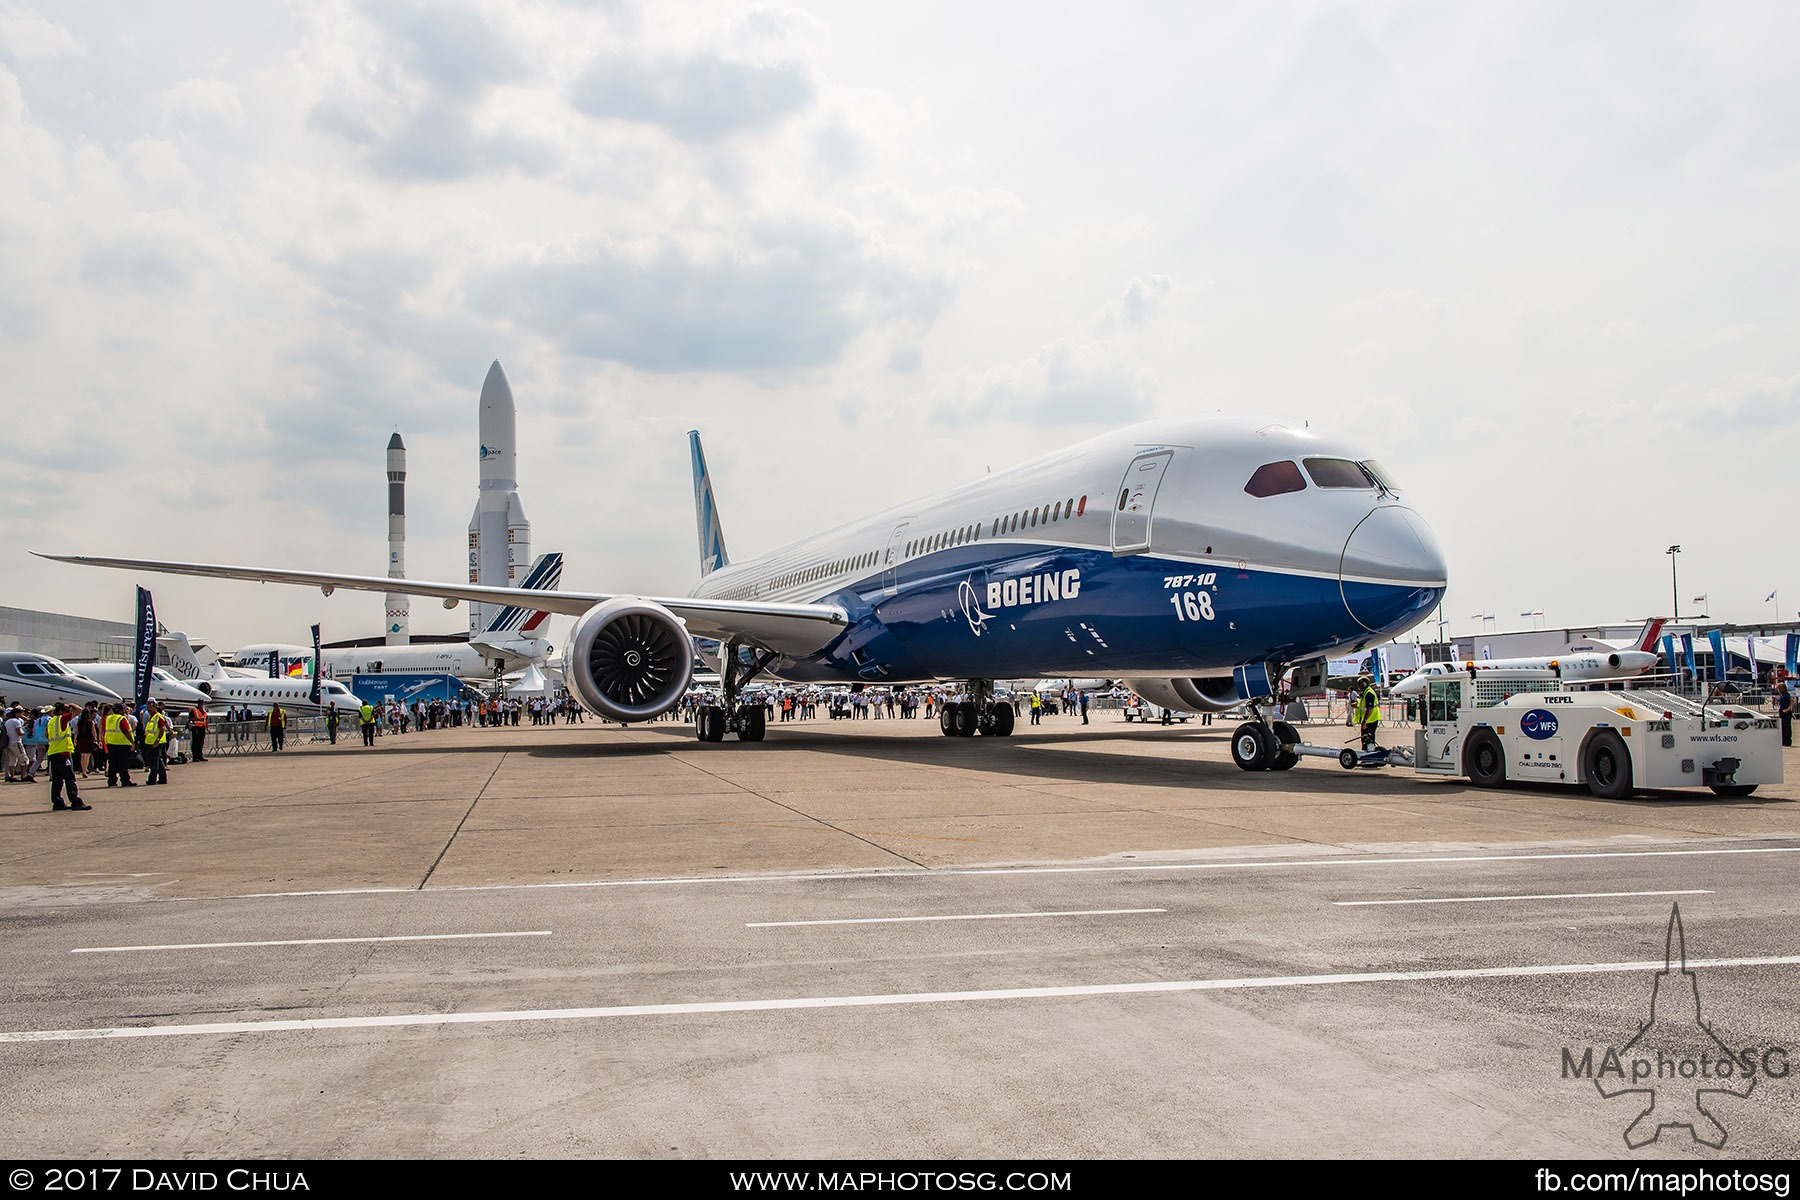 38. Boeing 787-10 Dreamliner being moved from it's Static Display.